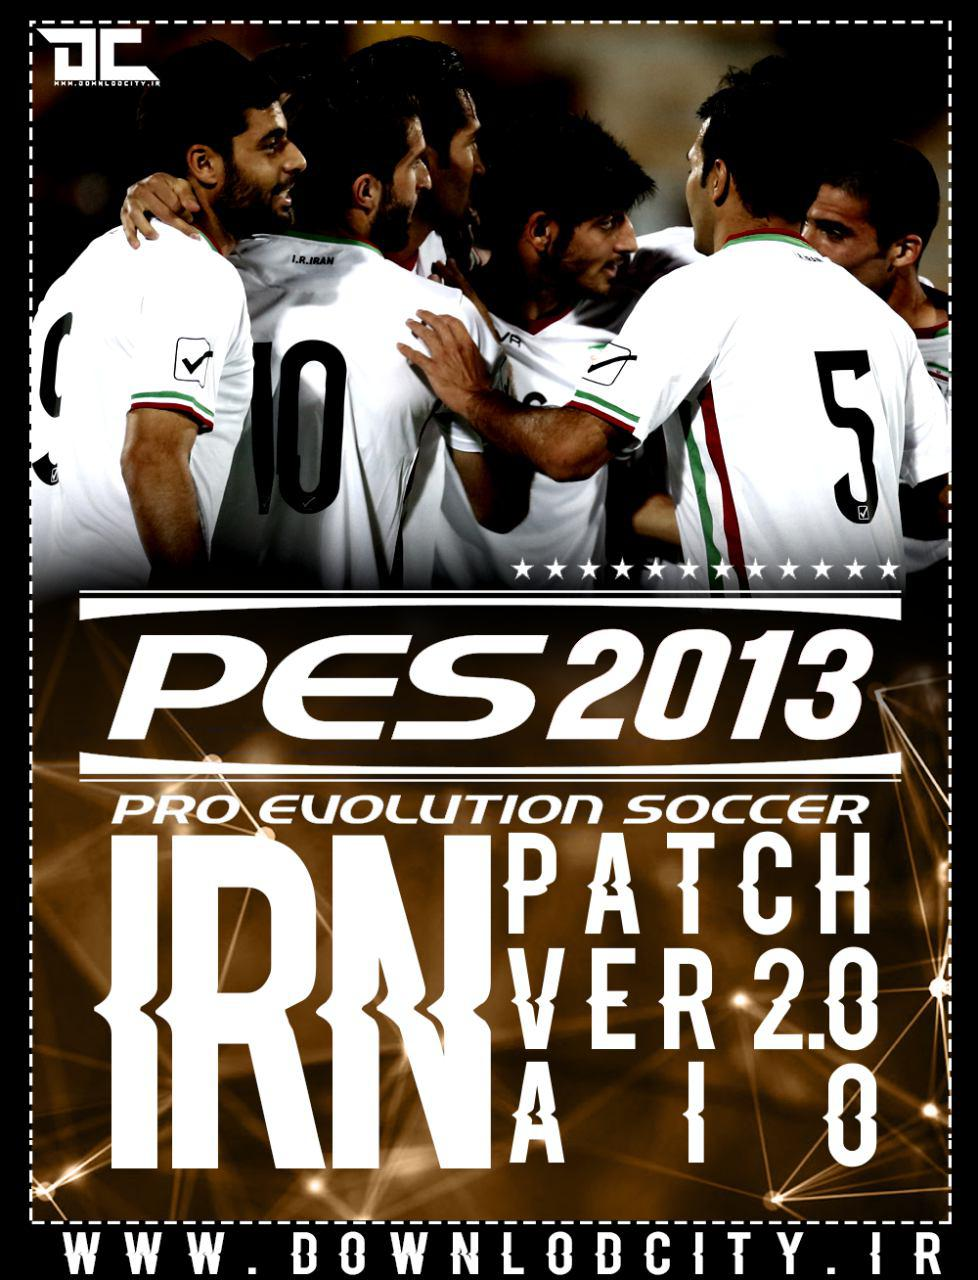 pes-2013-irn-patch-2-0-pes-kings